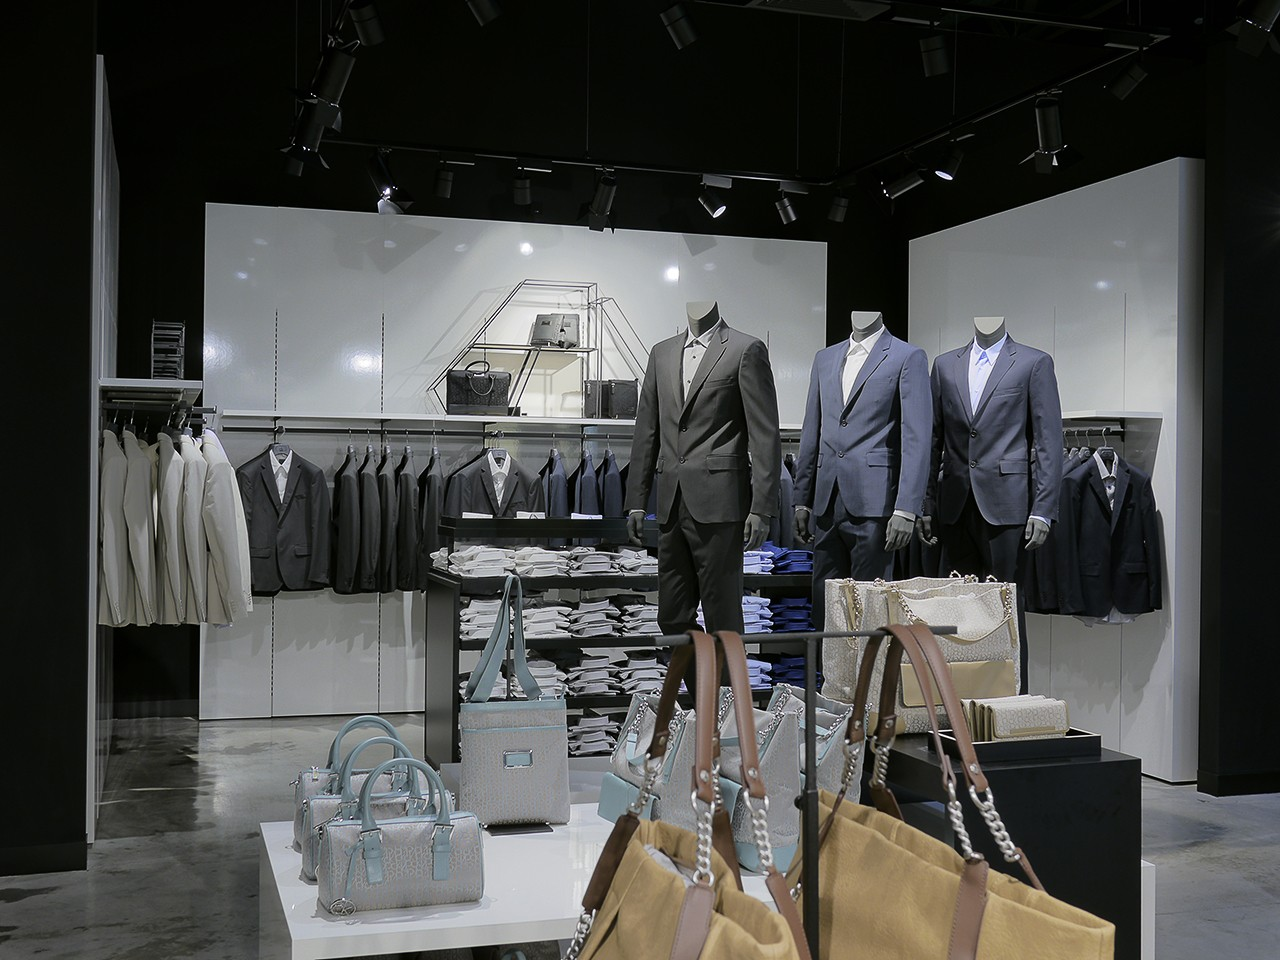 Photos of the interior of the boutique. Professional photographer Kirill Toll